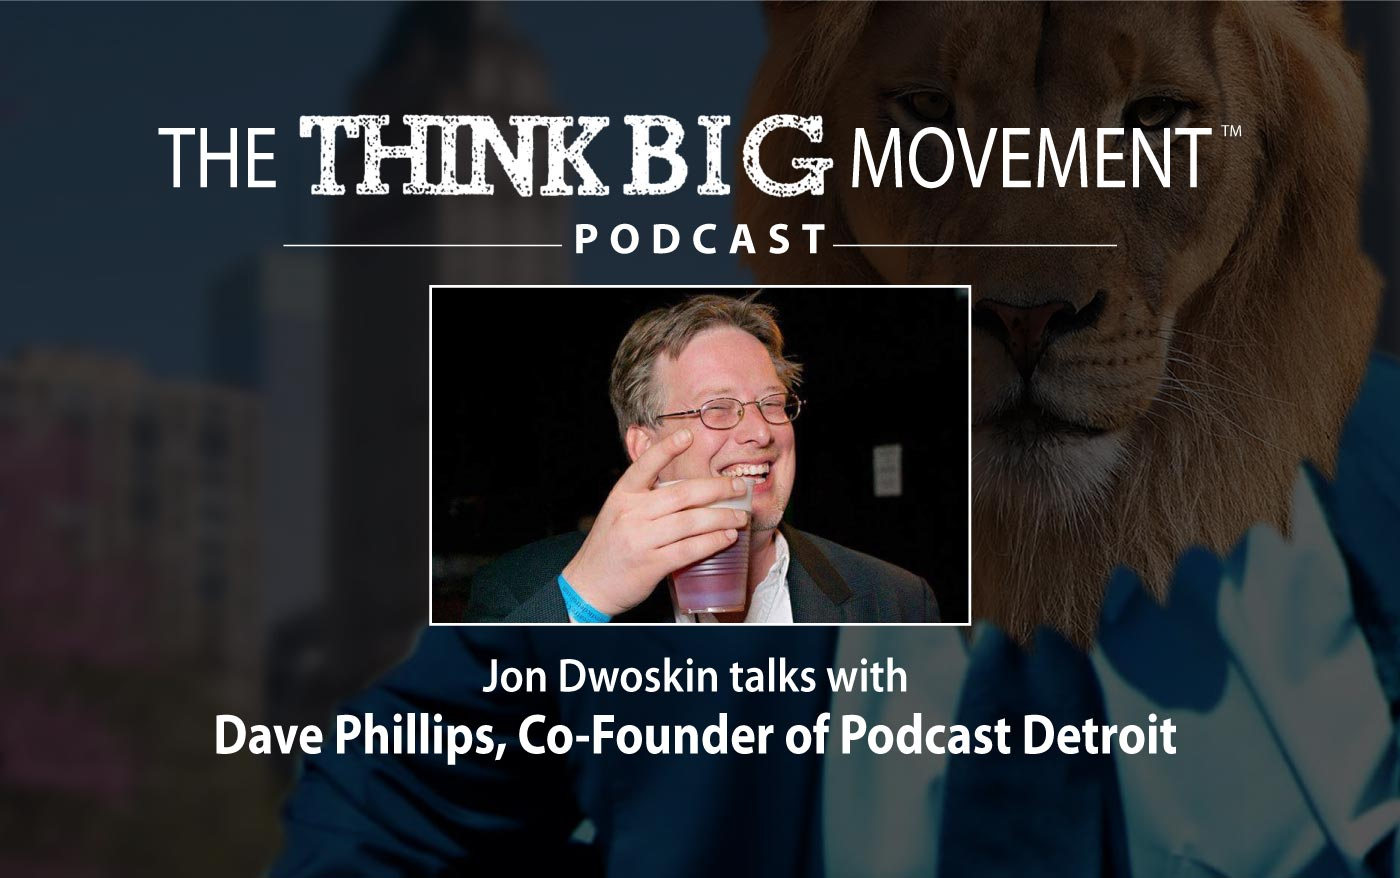 Jon Dwoskin Interviews Dave Phillips, Co-Founder of Podcast Detroit